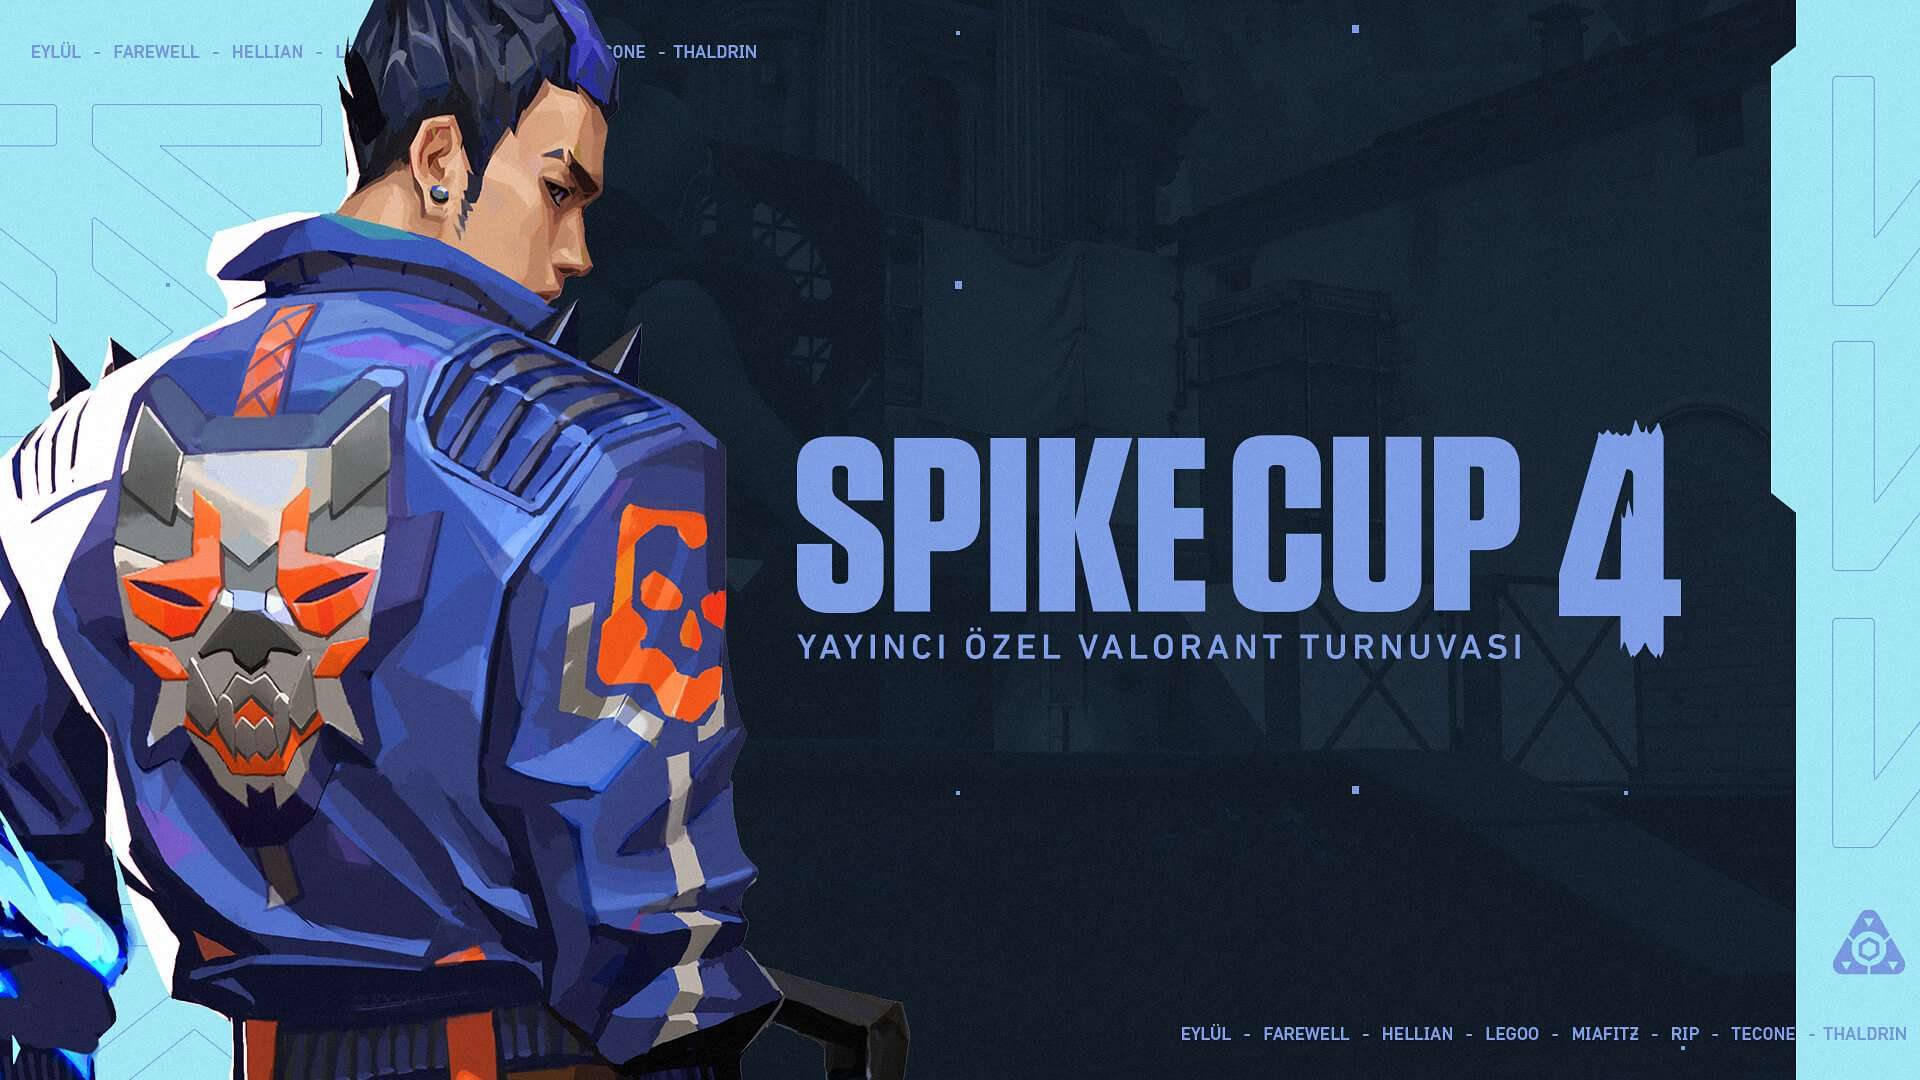 valorant spike cup 4